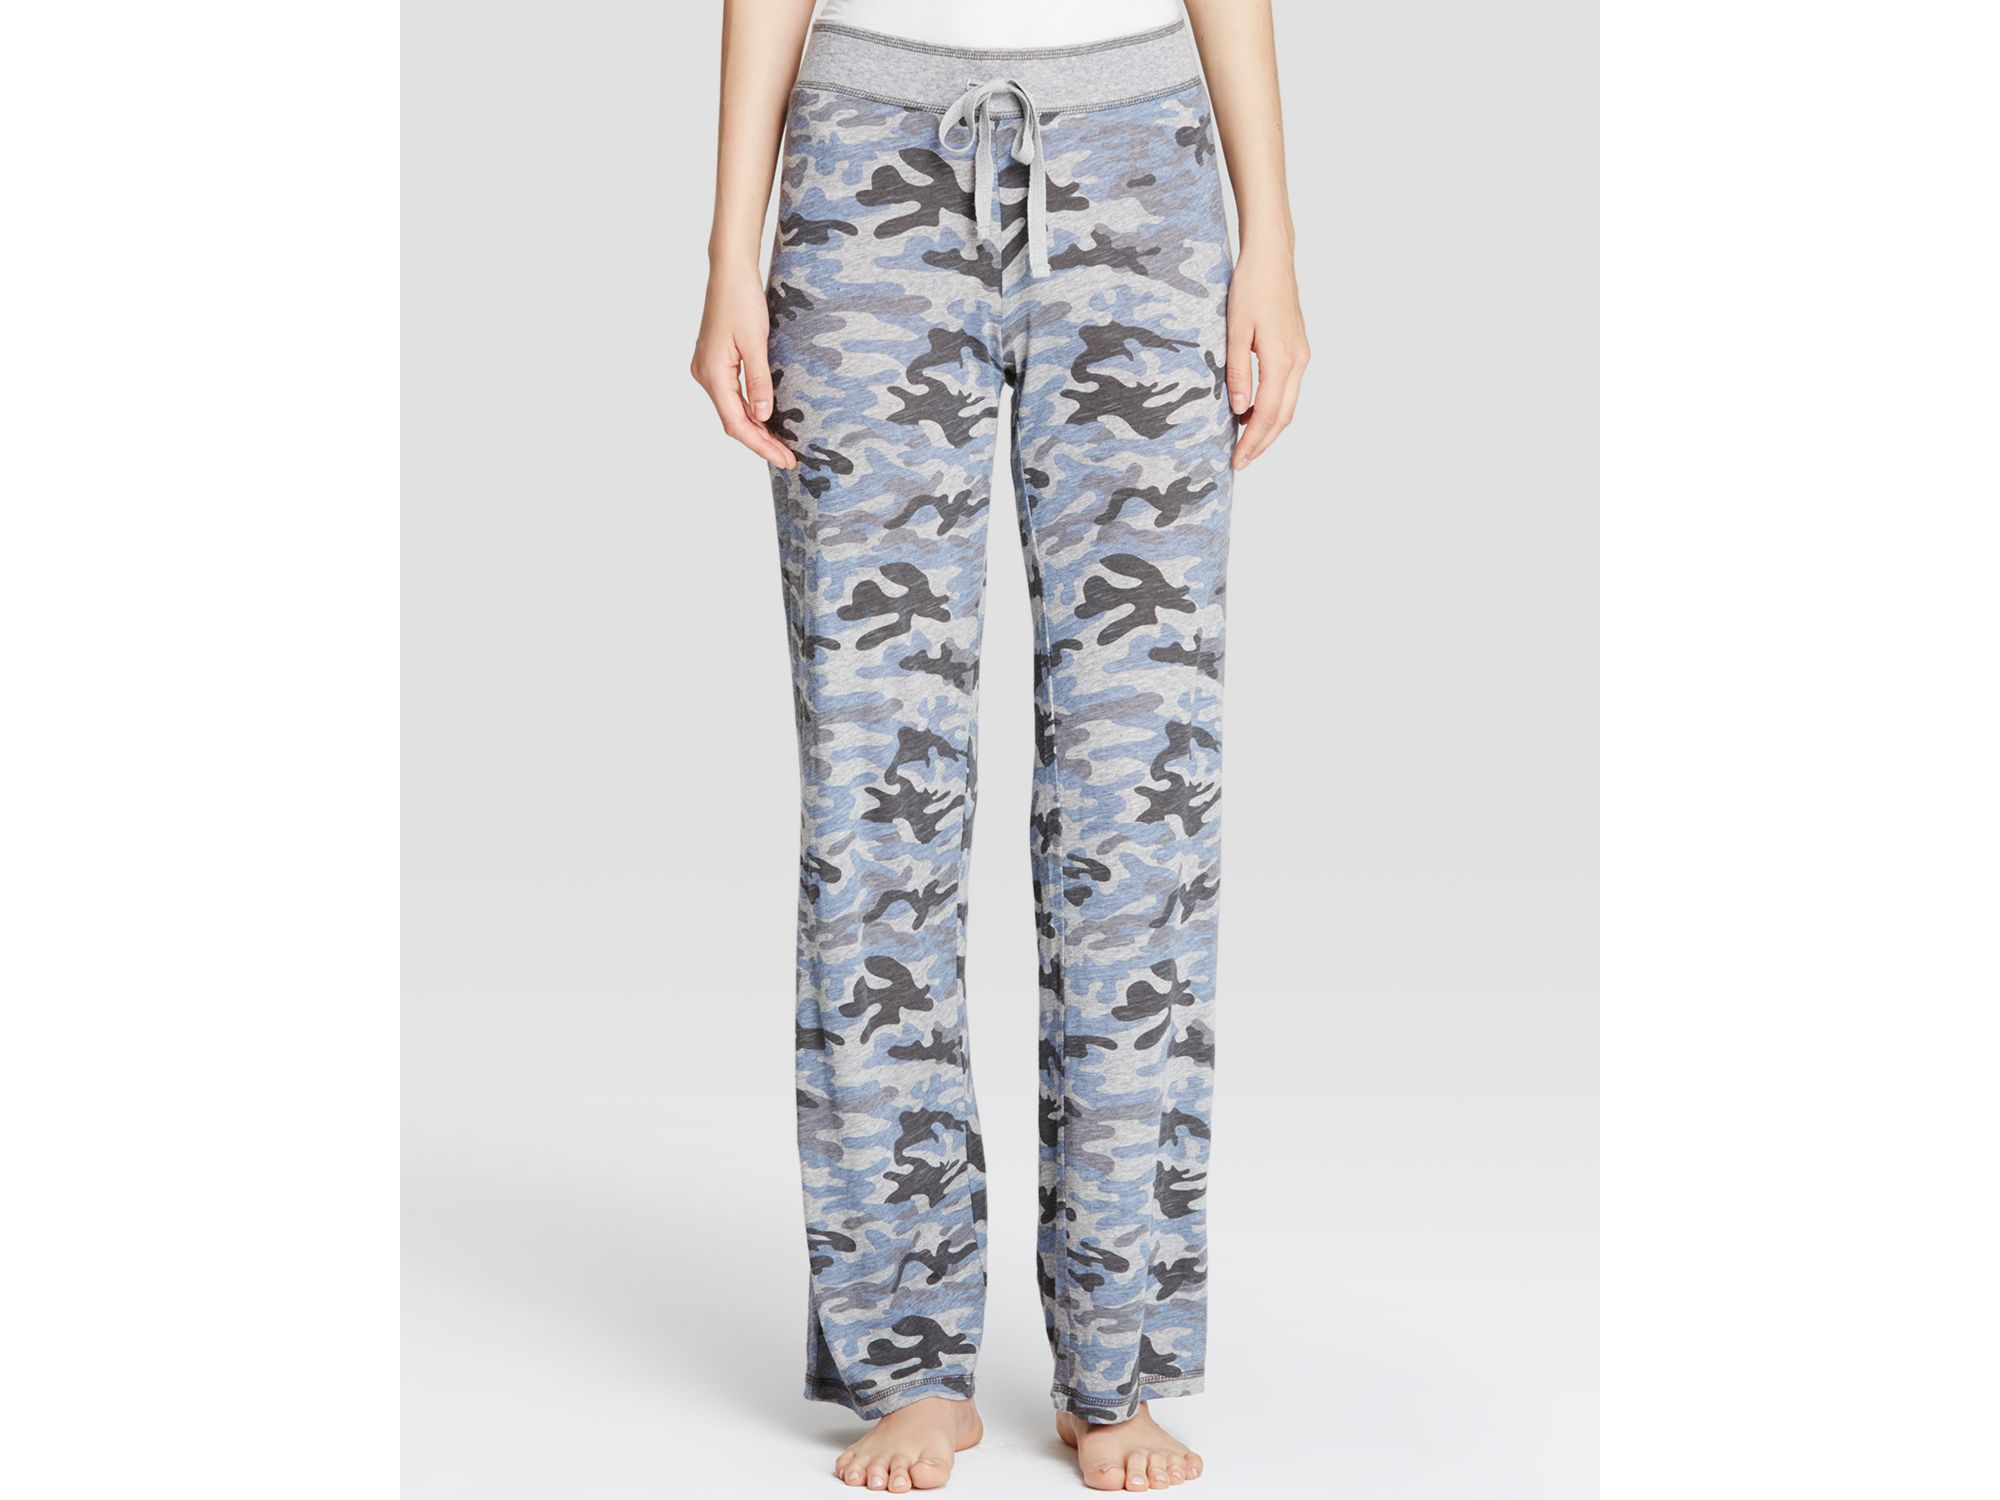 Creative Rewind 9127 Womens Gray Camouflage Stretch Cargo Pants ...